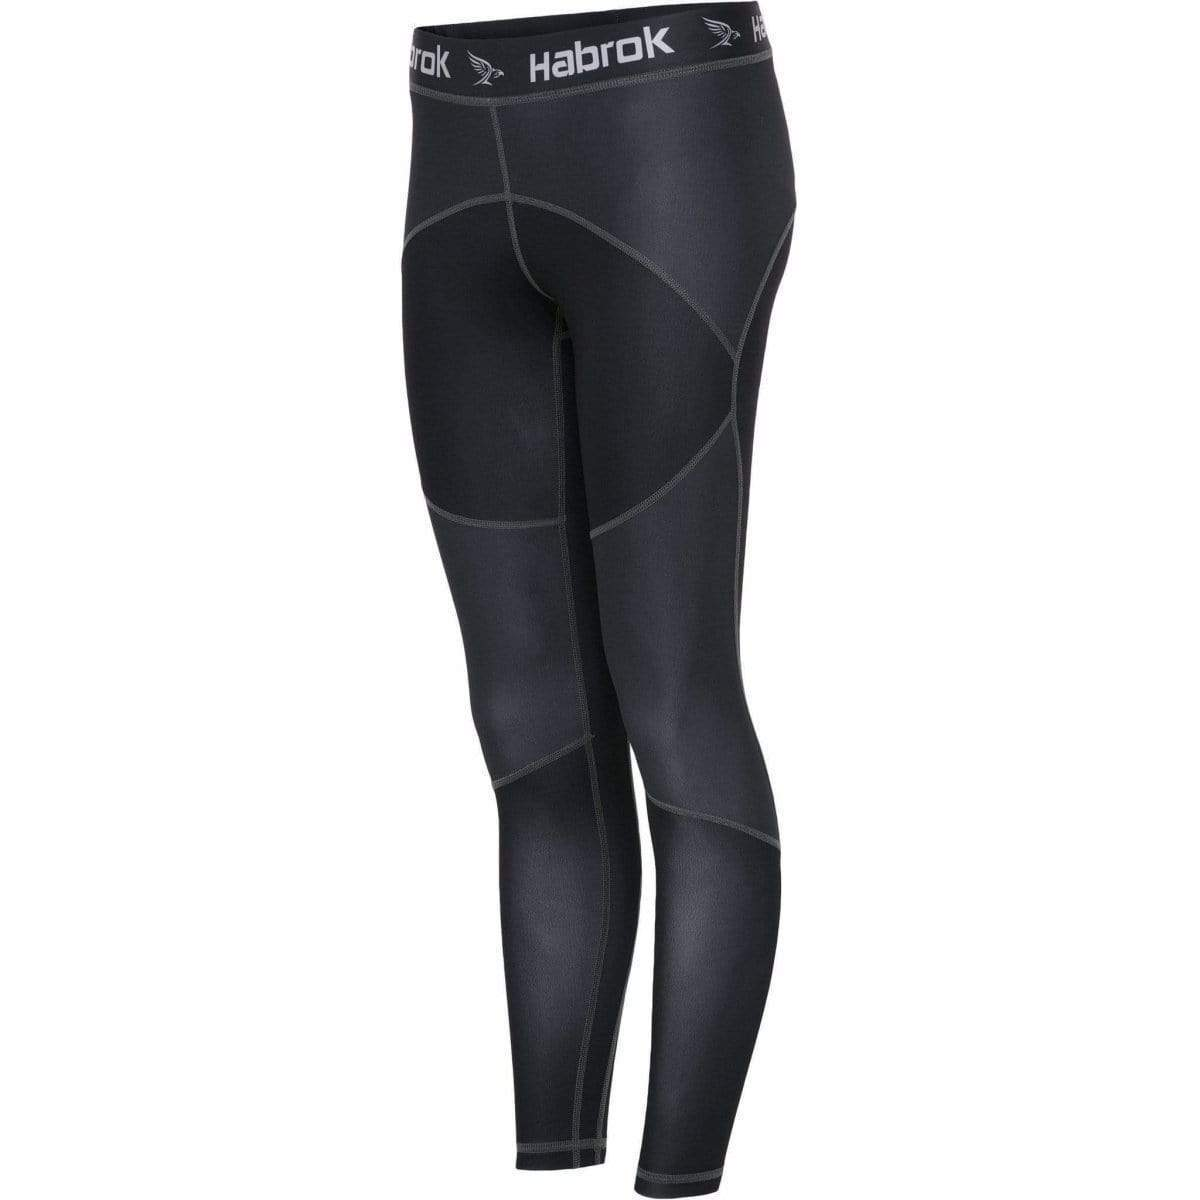 Habrok Spats XS / BLACK Pugnator | Compression Pants | Women